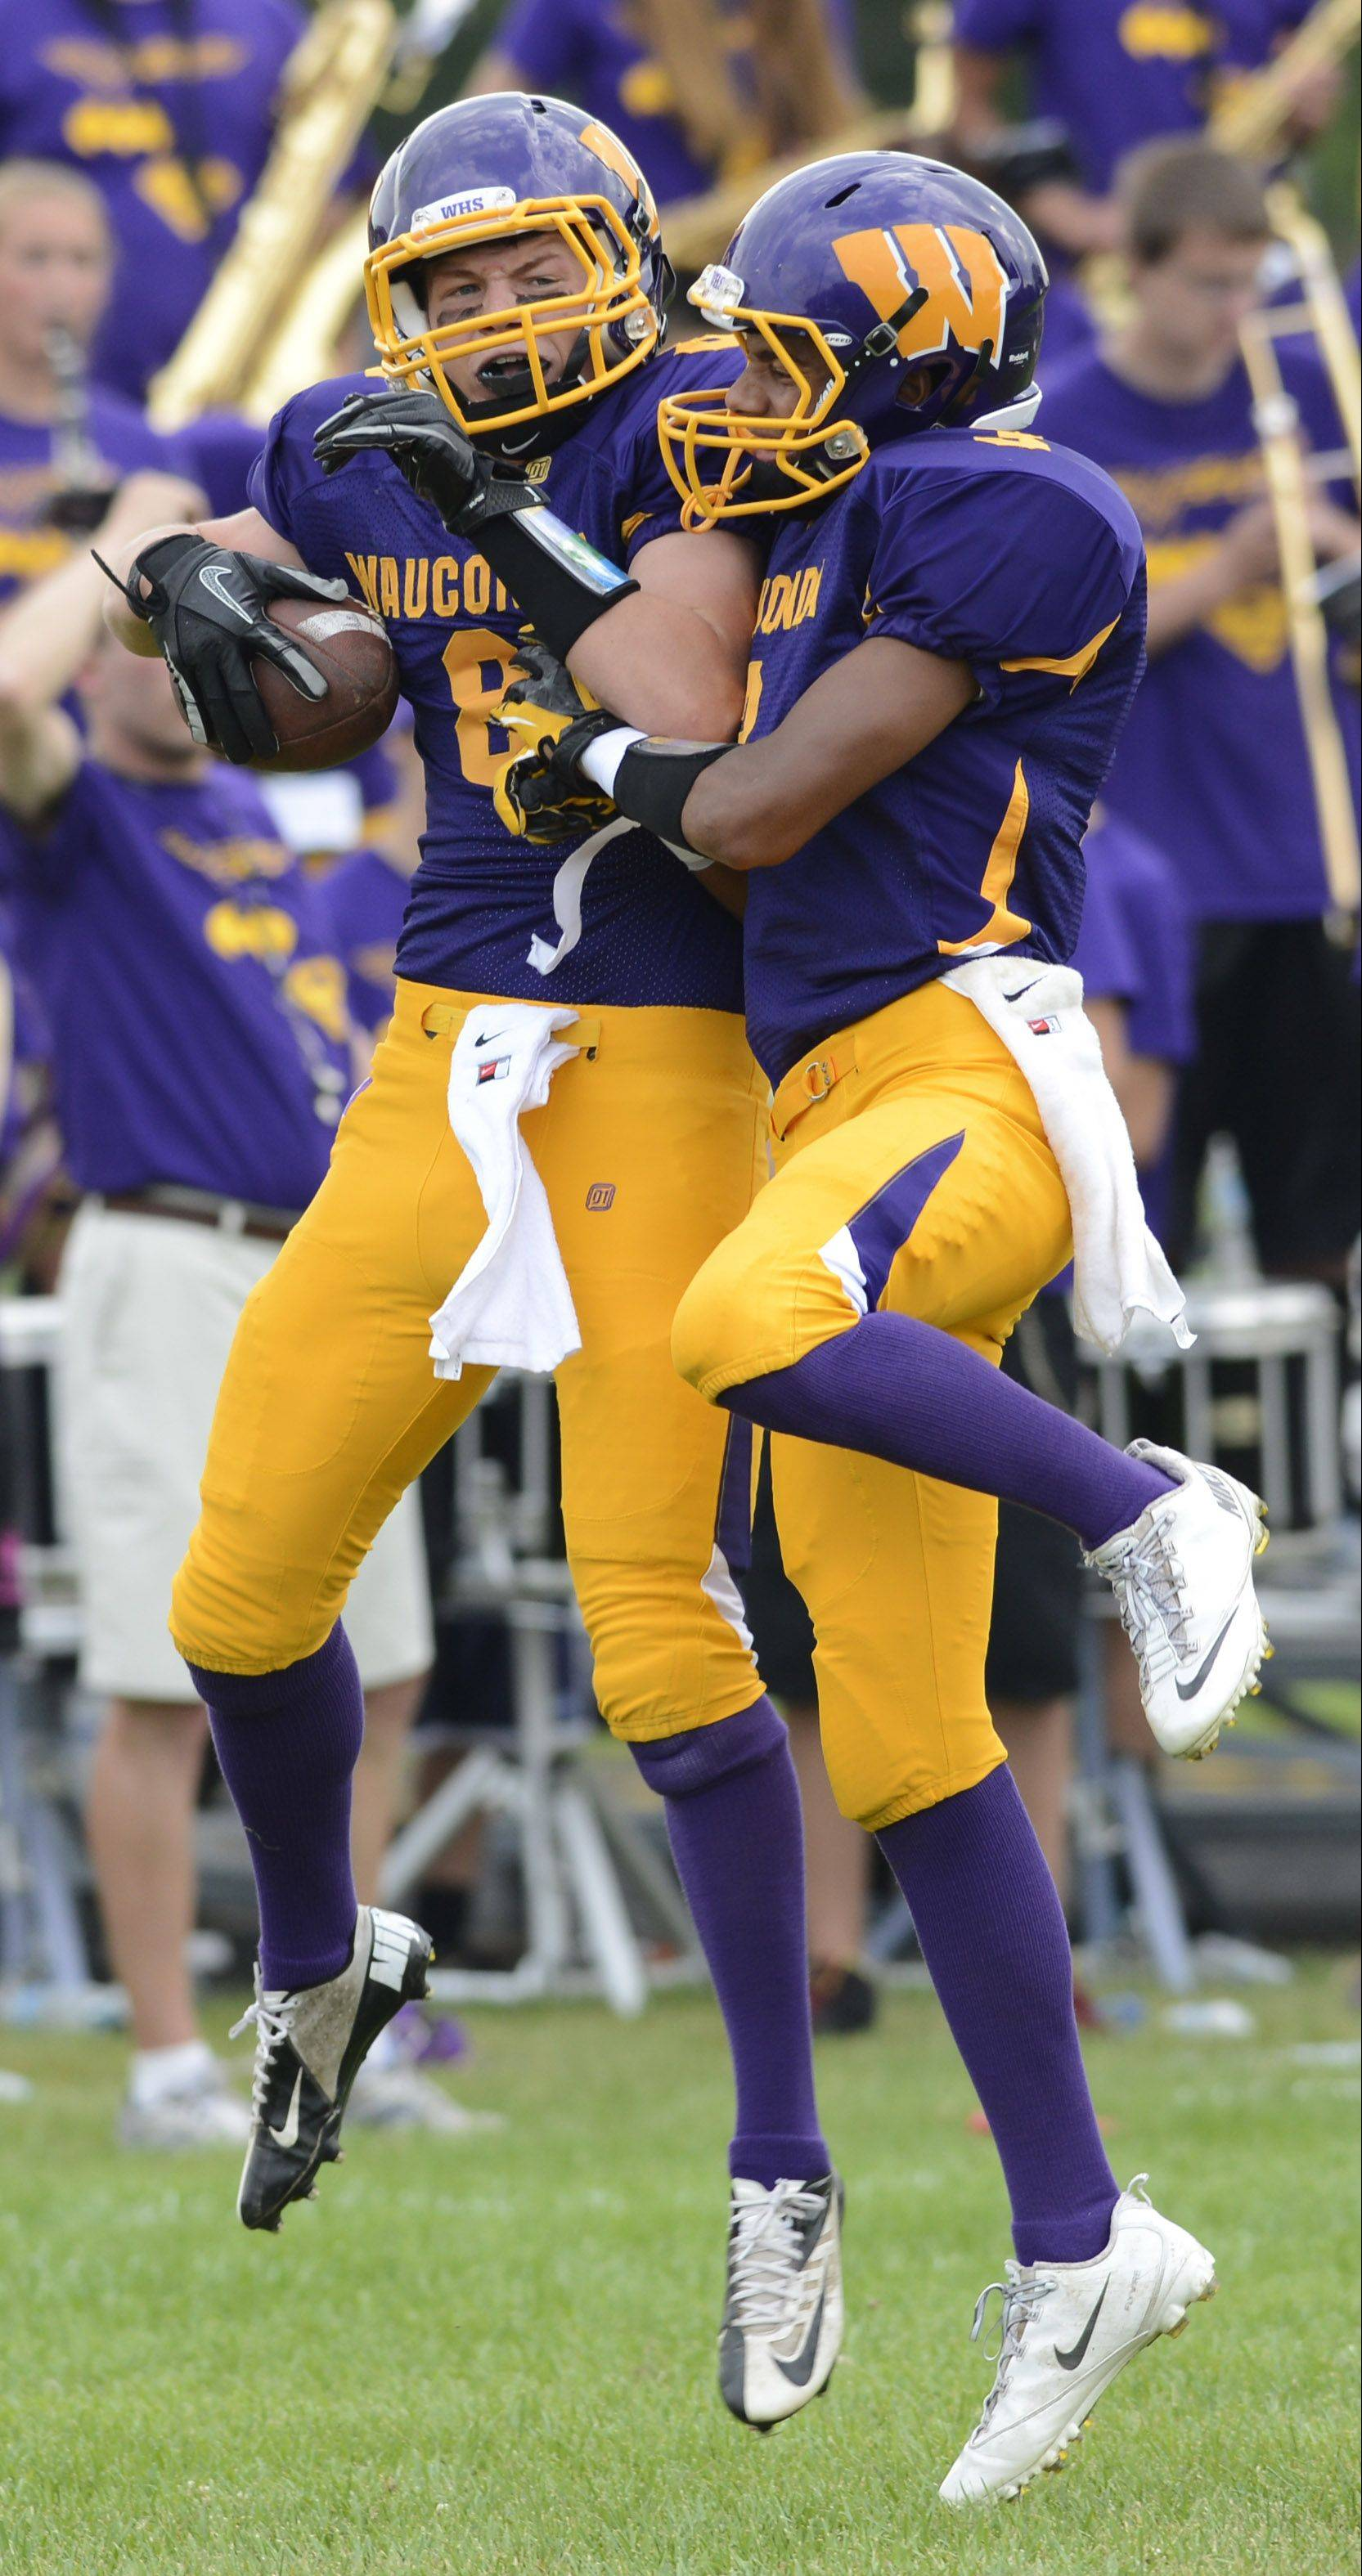 Wauconda's Alex Schwickrath, left, celebrates his first-quarter touchdown with teammate Josh Anderson during Saturday's game against Orr.